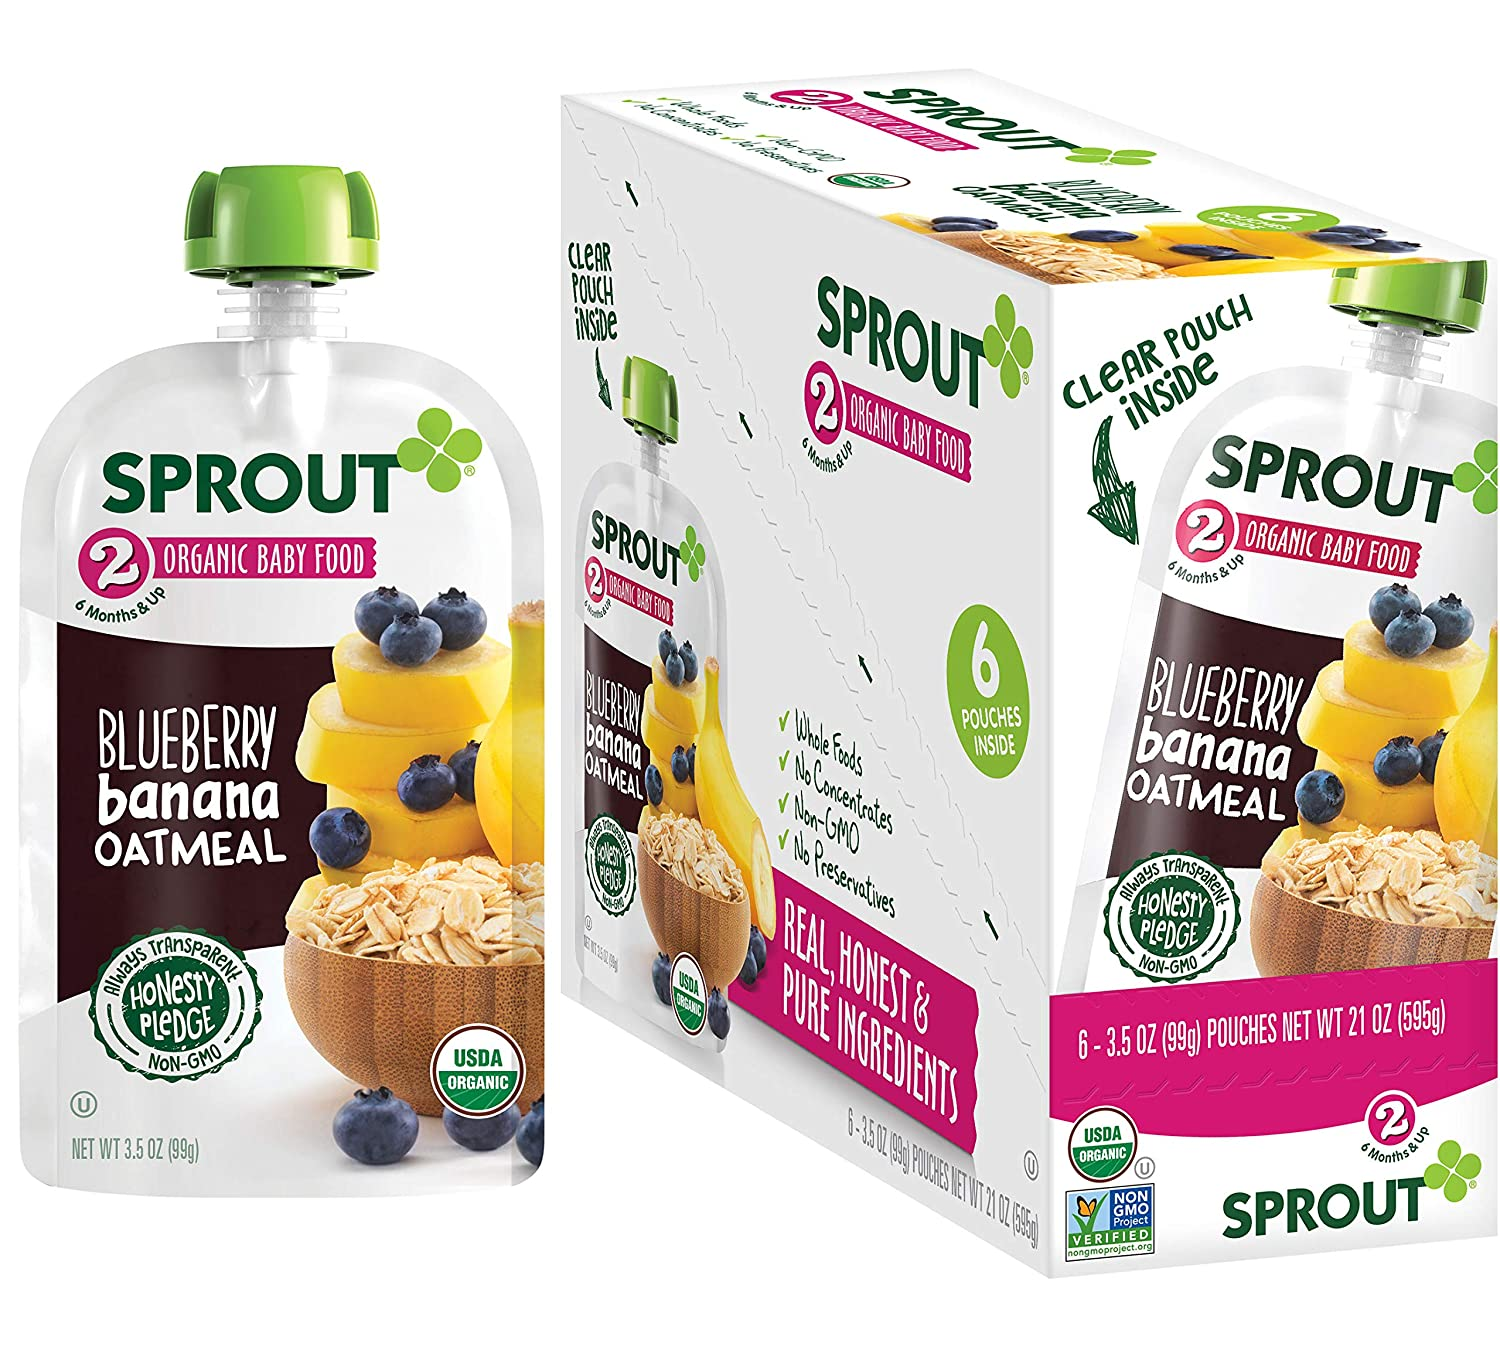 Sprout Organic Stage 2 Baby Food Pouches, Blueberry Banana Oatmeal, 3.5 Ounce (Pack of 6)